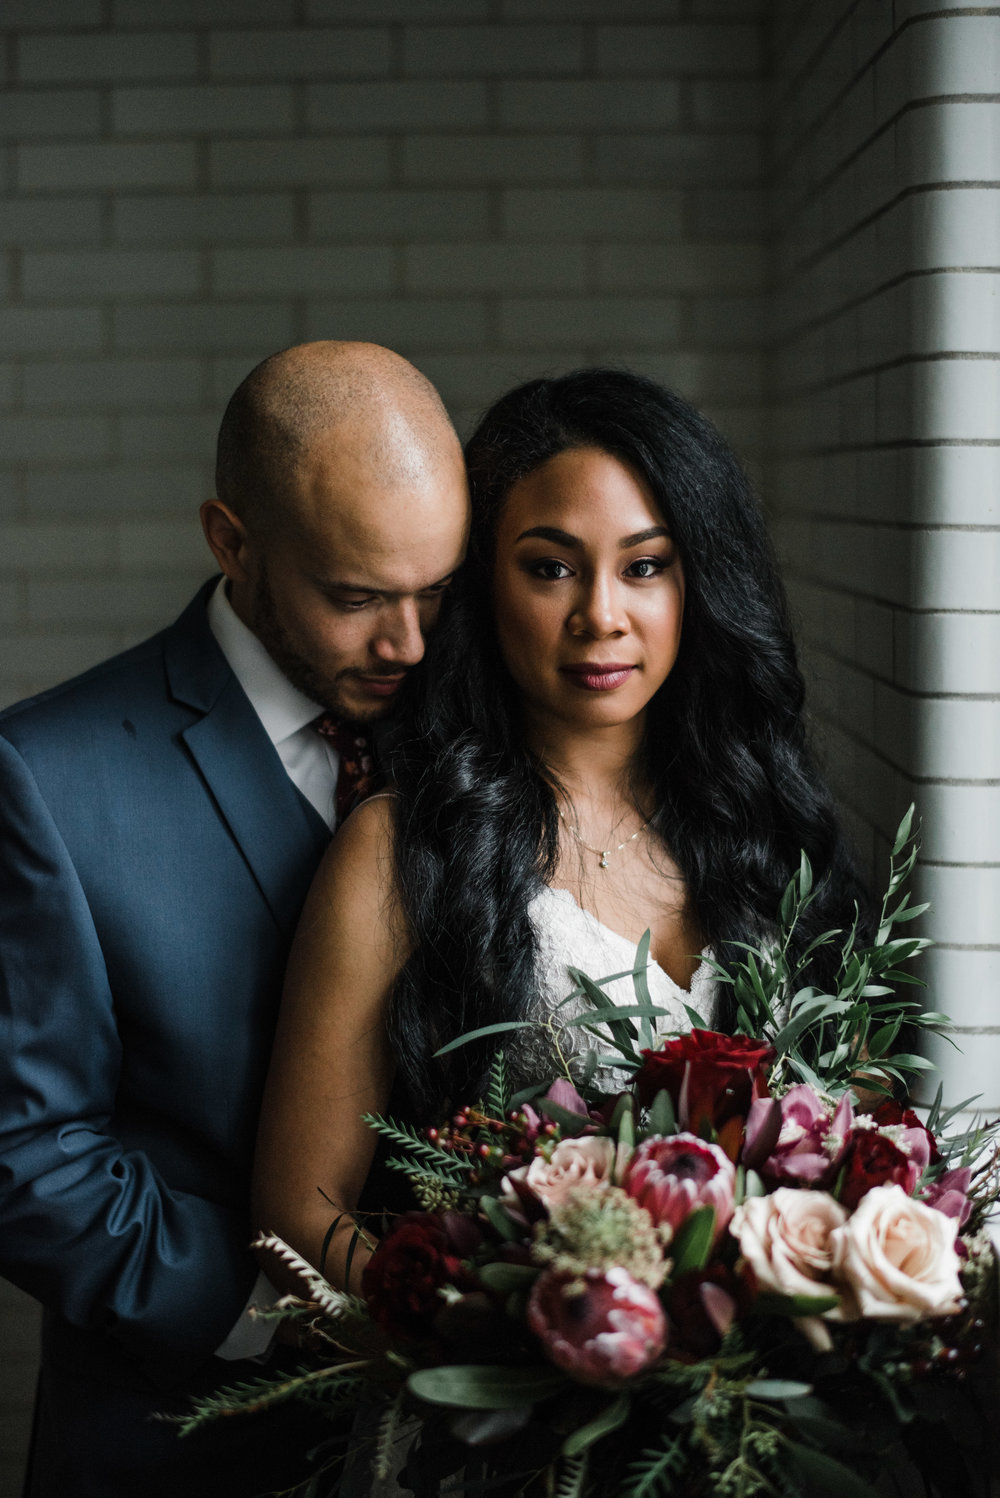 Wedding portrait of bride and groom with protea and roses. Des Moines, IA. Photographed by Austin Day.